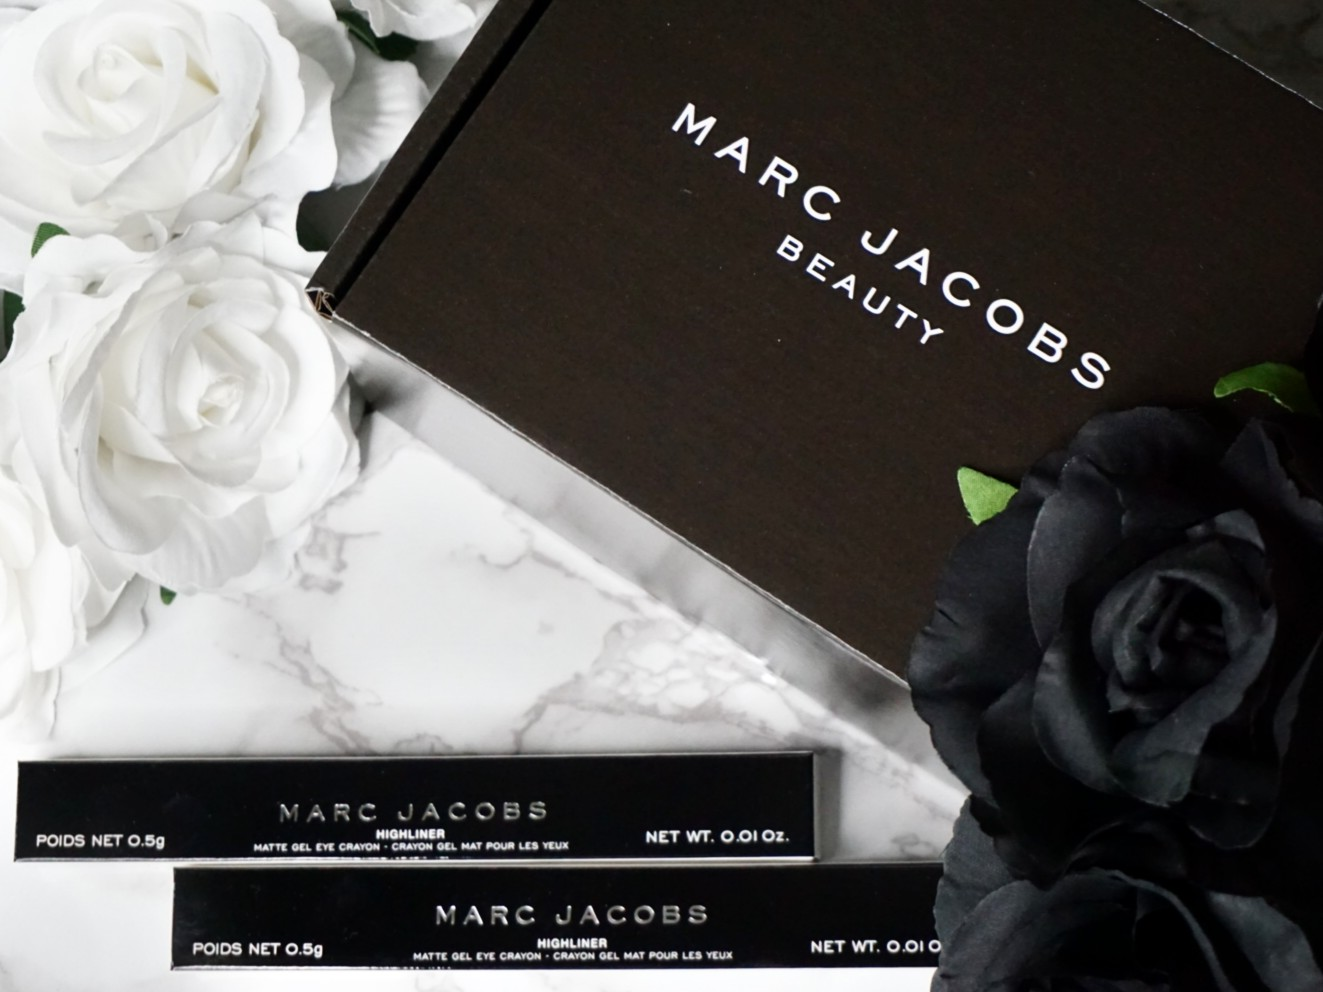 FIRST LOOK AT THE MARC JACOBS MATTE GEL EYE HIGHLINERS. ARE THEY TRULY WORTH THE PURCHASE?